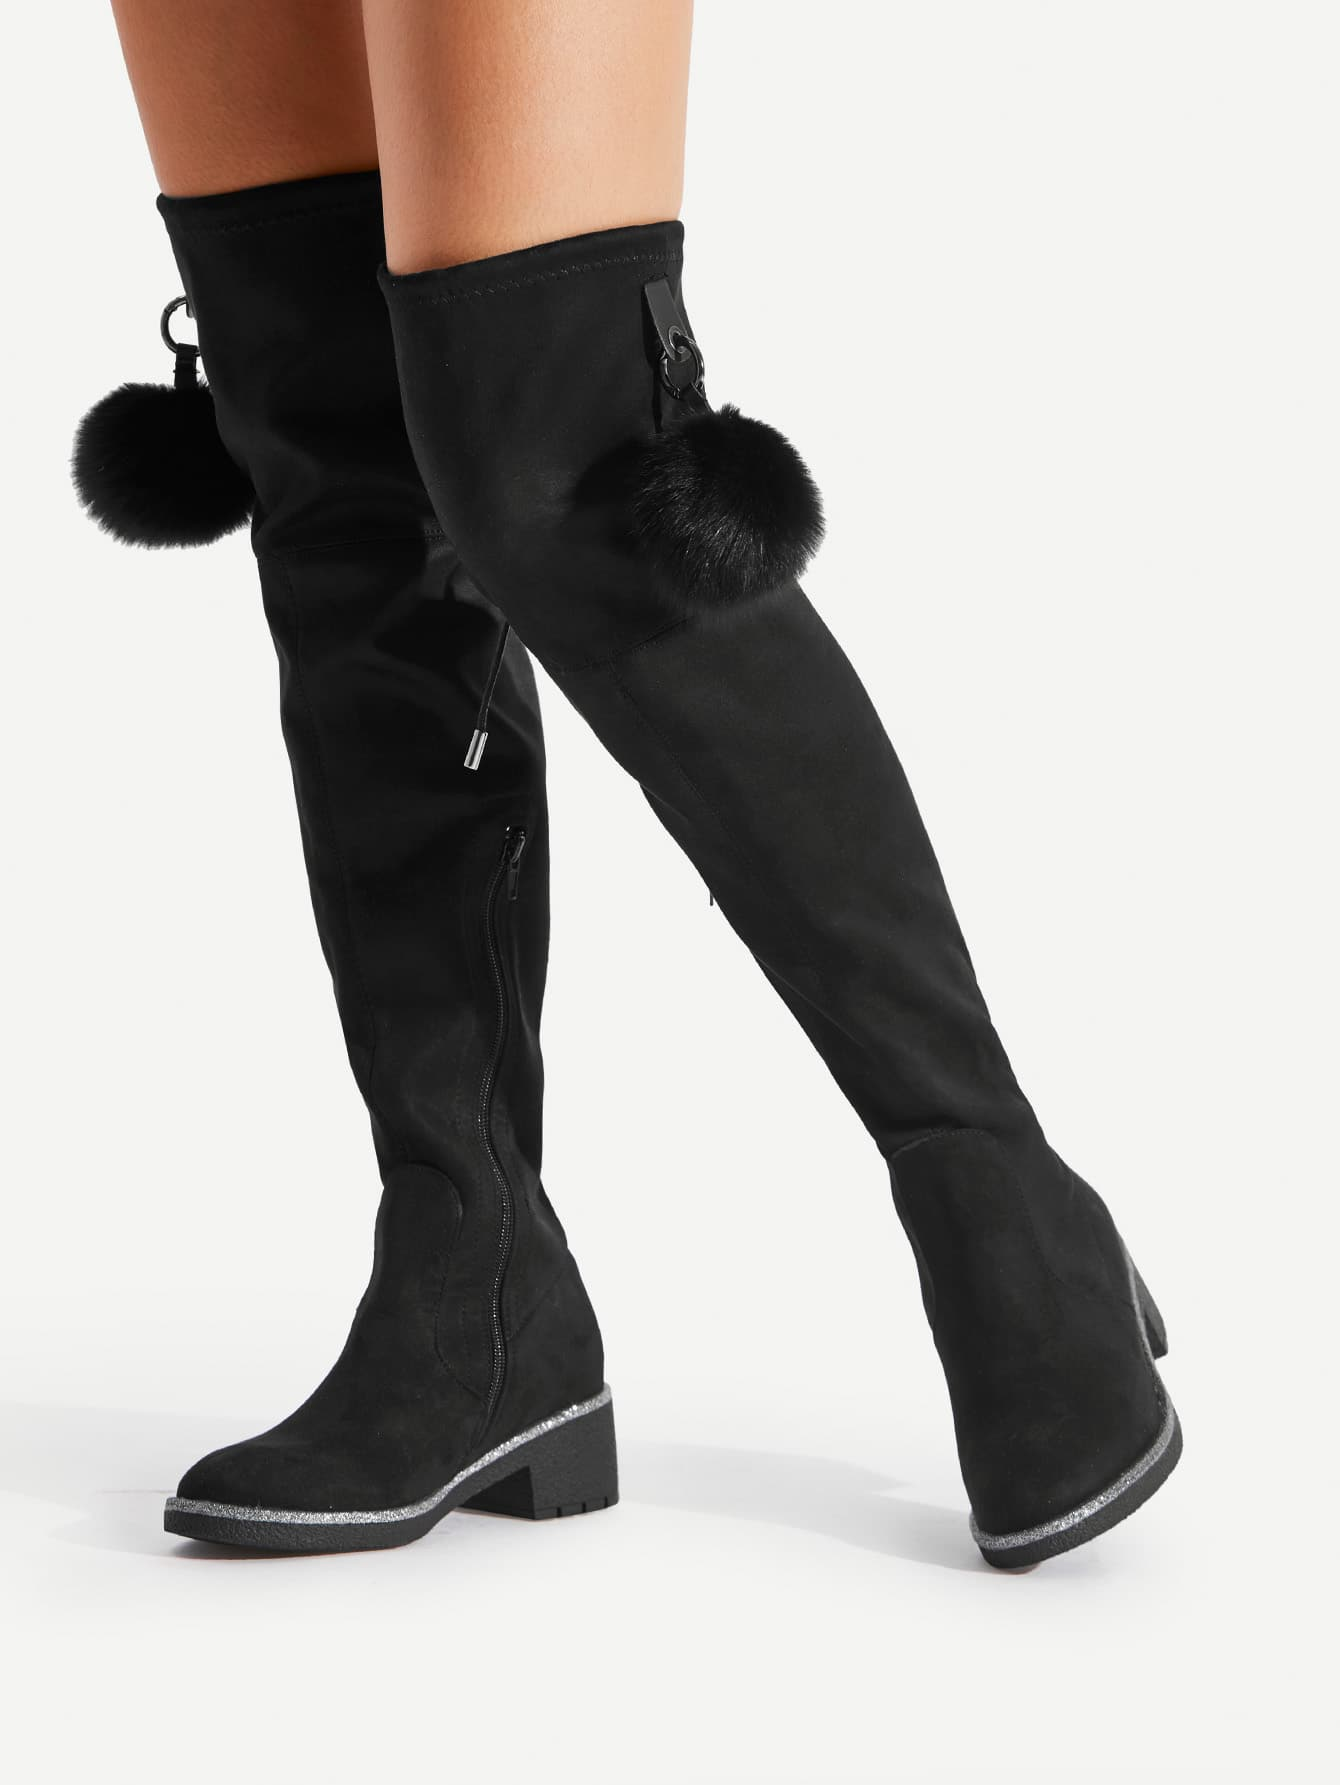 Pom Pom Decorated Over The Knee Boots new women over knee boots with fur black thigh high boots shoes woman round toe winter stretch slim winter boots black fs 0104